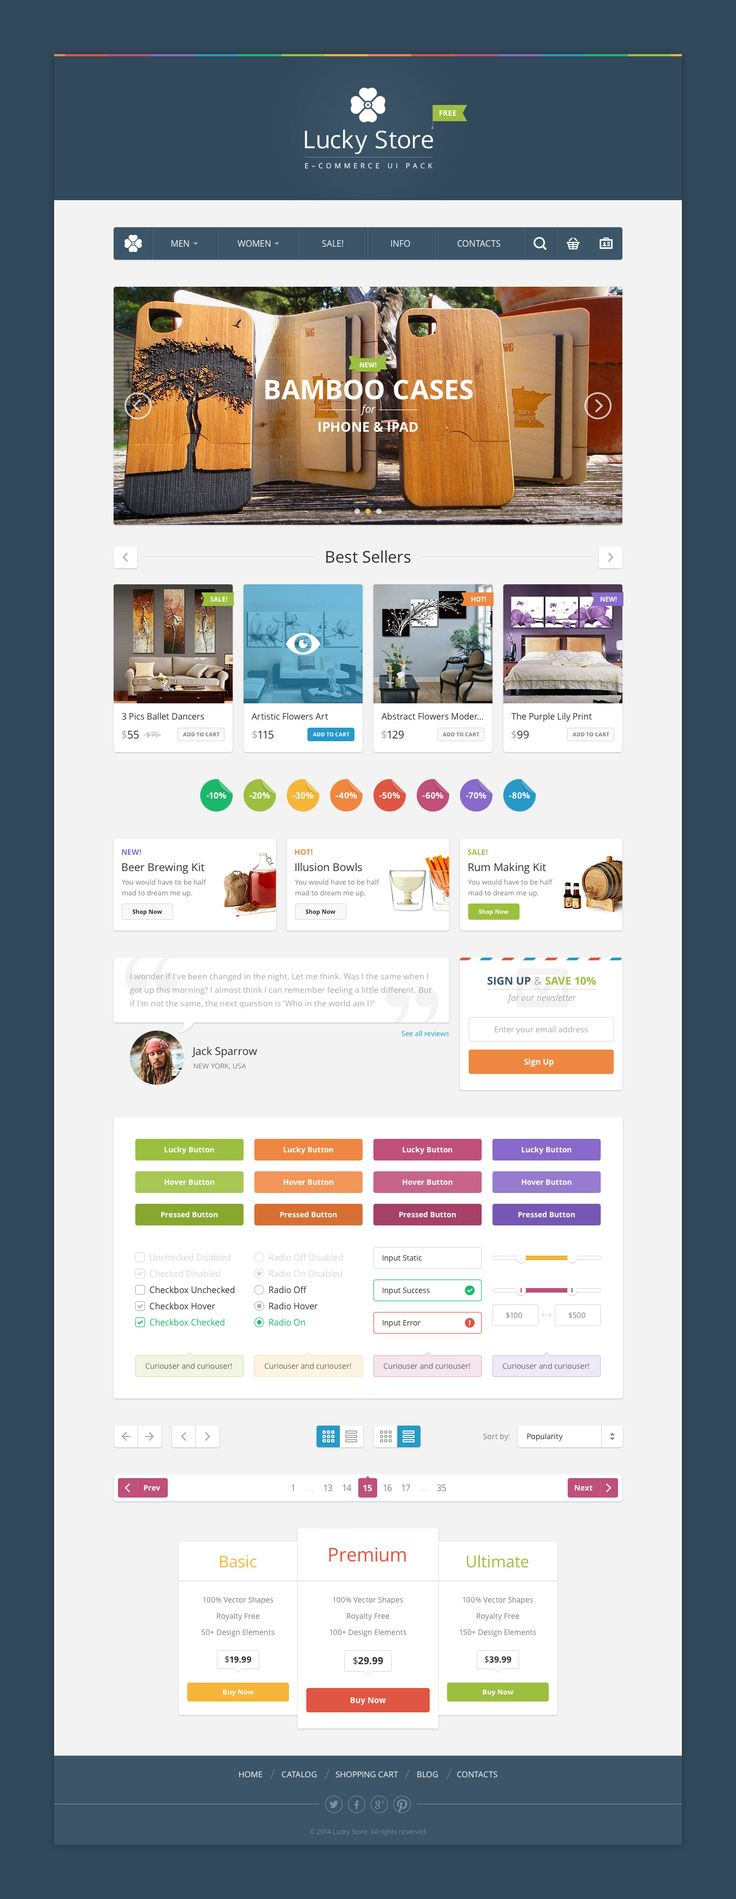 Lucky Store UI - download freebie by PixelBuddha